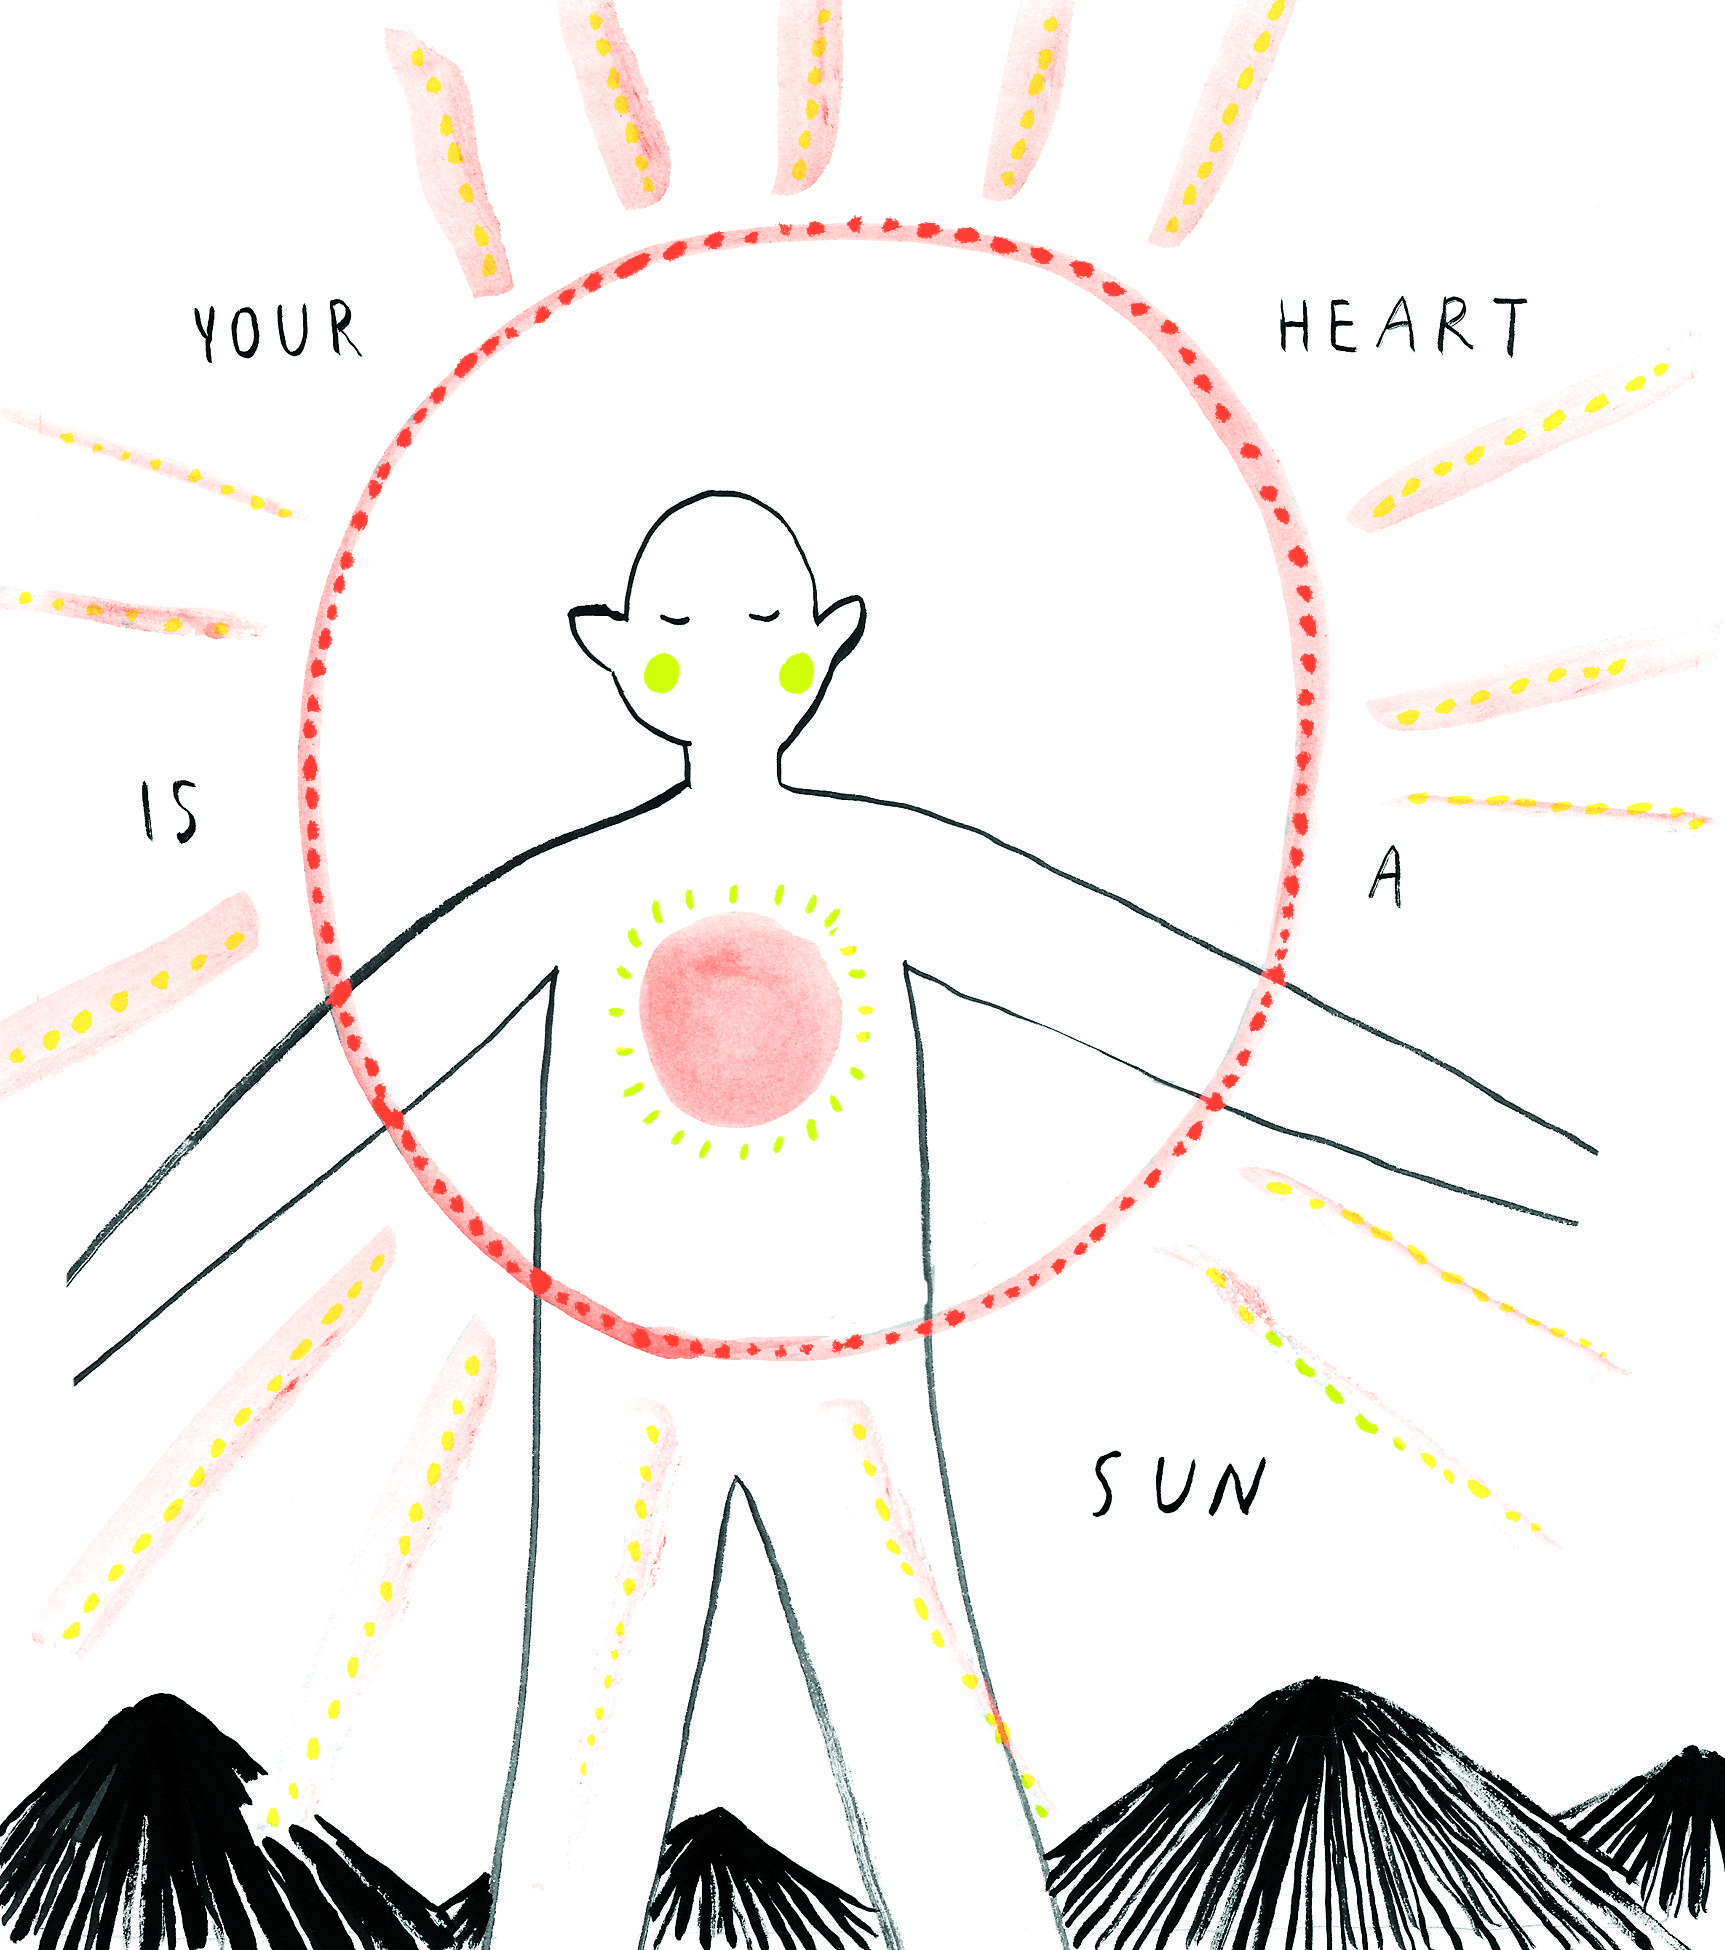 YUMI SAKUGAWA: HOW TO BECOME ONE WITH THE UNIVERSE - the Numinous